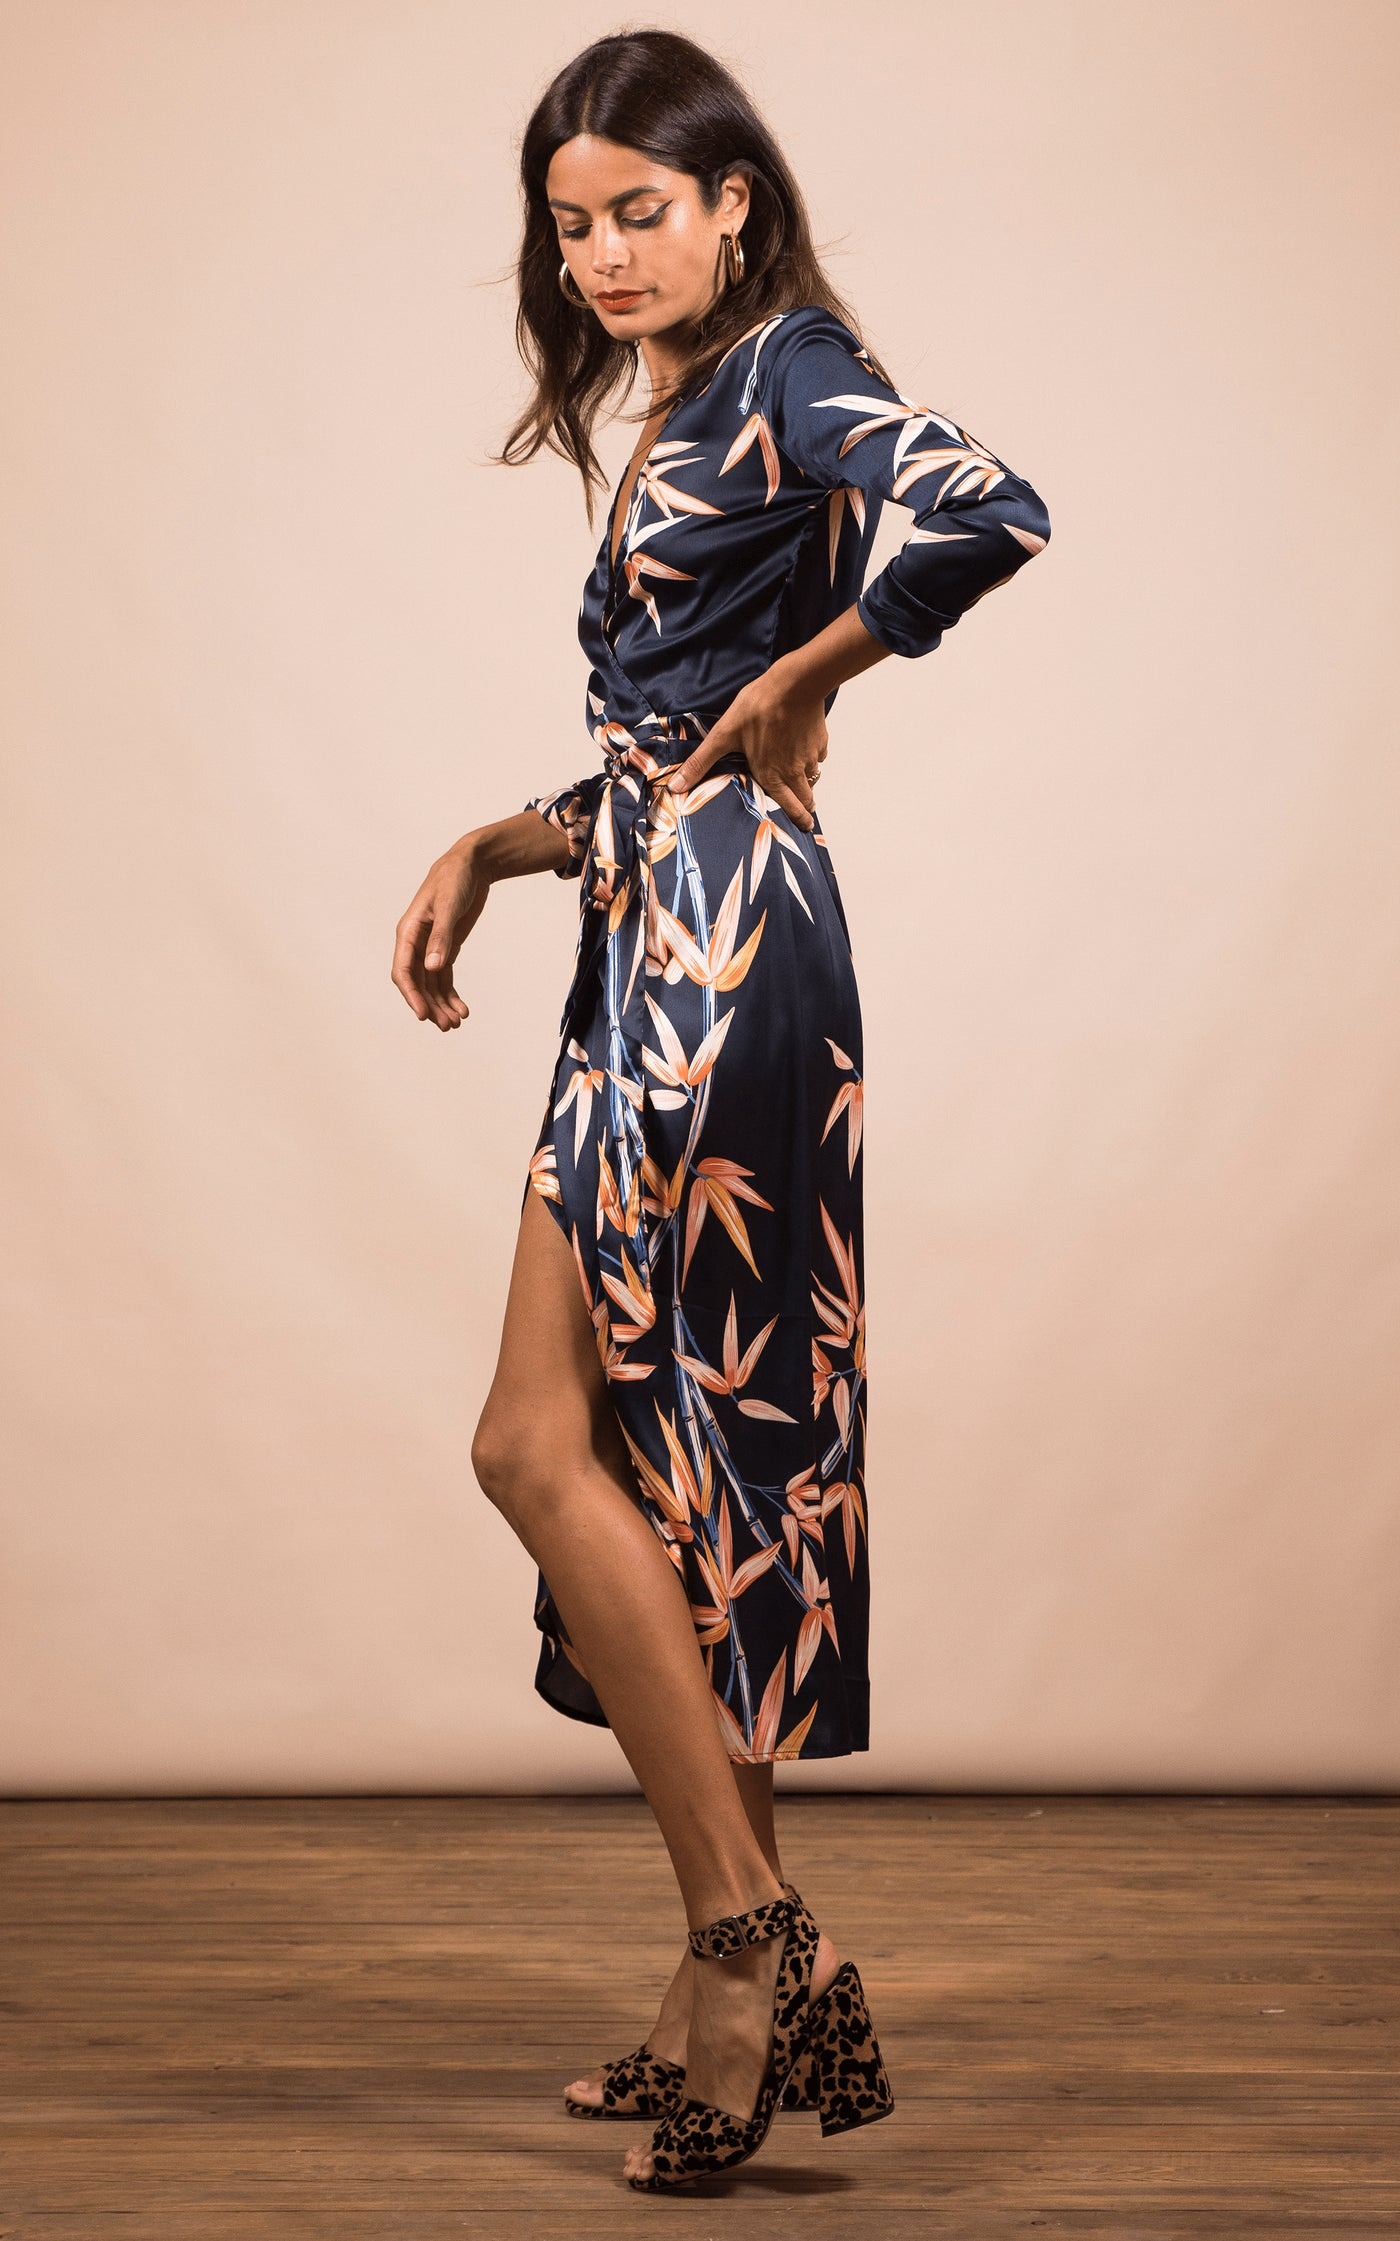 Dancing Leopard model faces sideways wearing Yondal Dress in bamboo print with heels